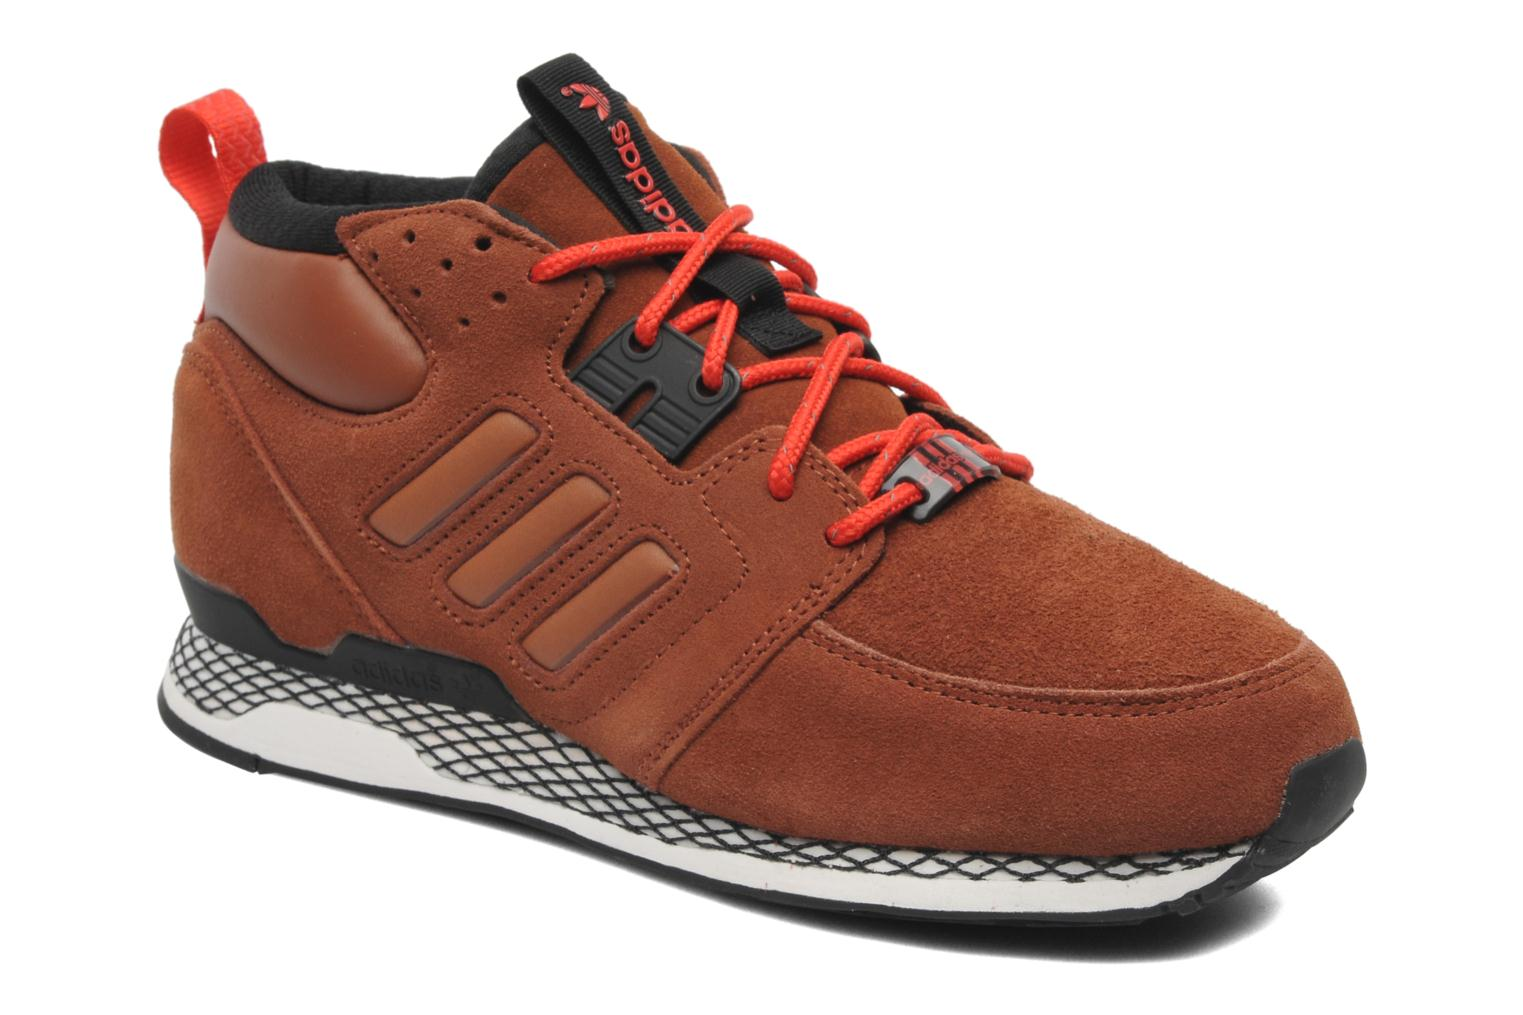 new arrival e0bcd 364a1 zx flux blanc et rose adidas zx casual mid 07